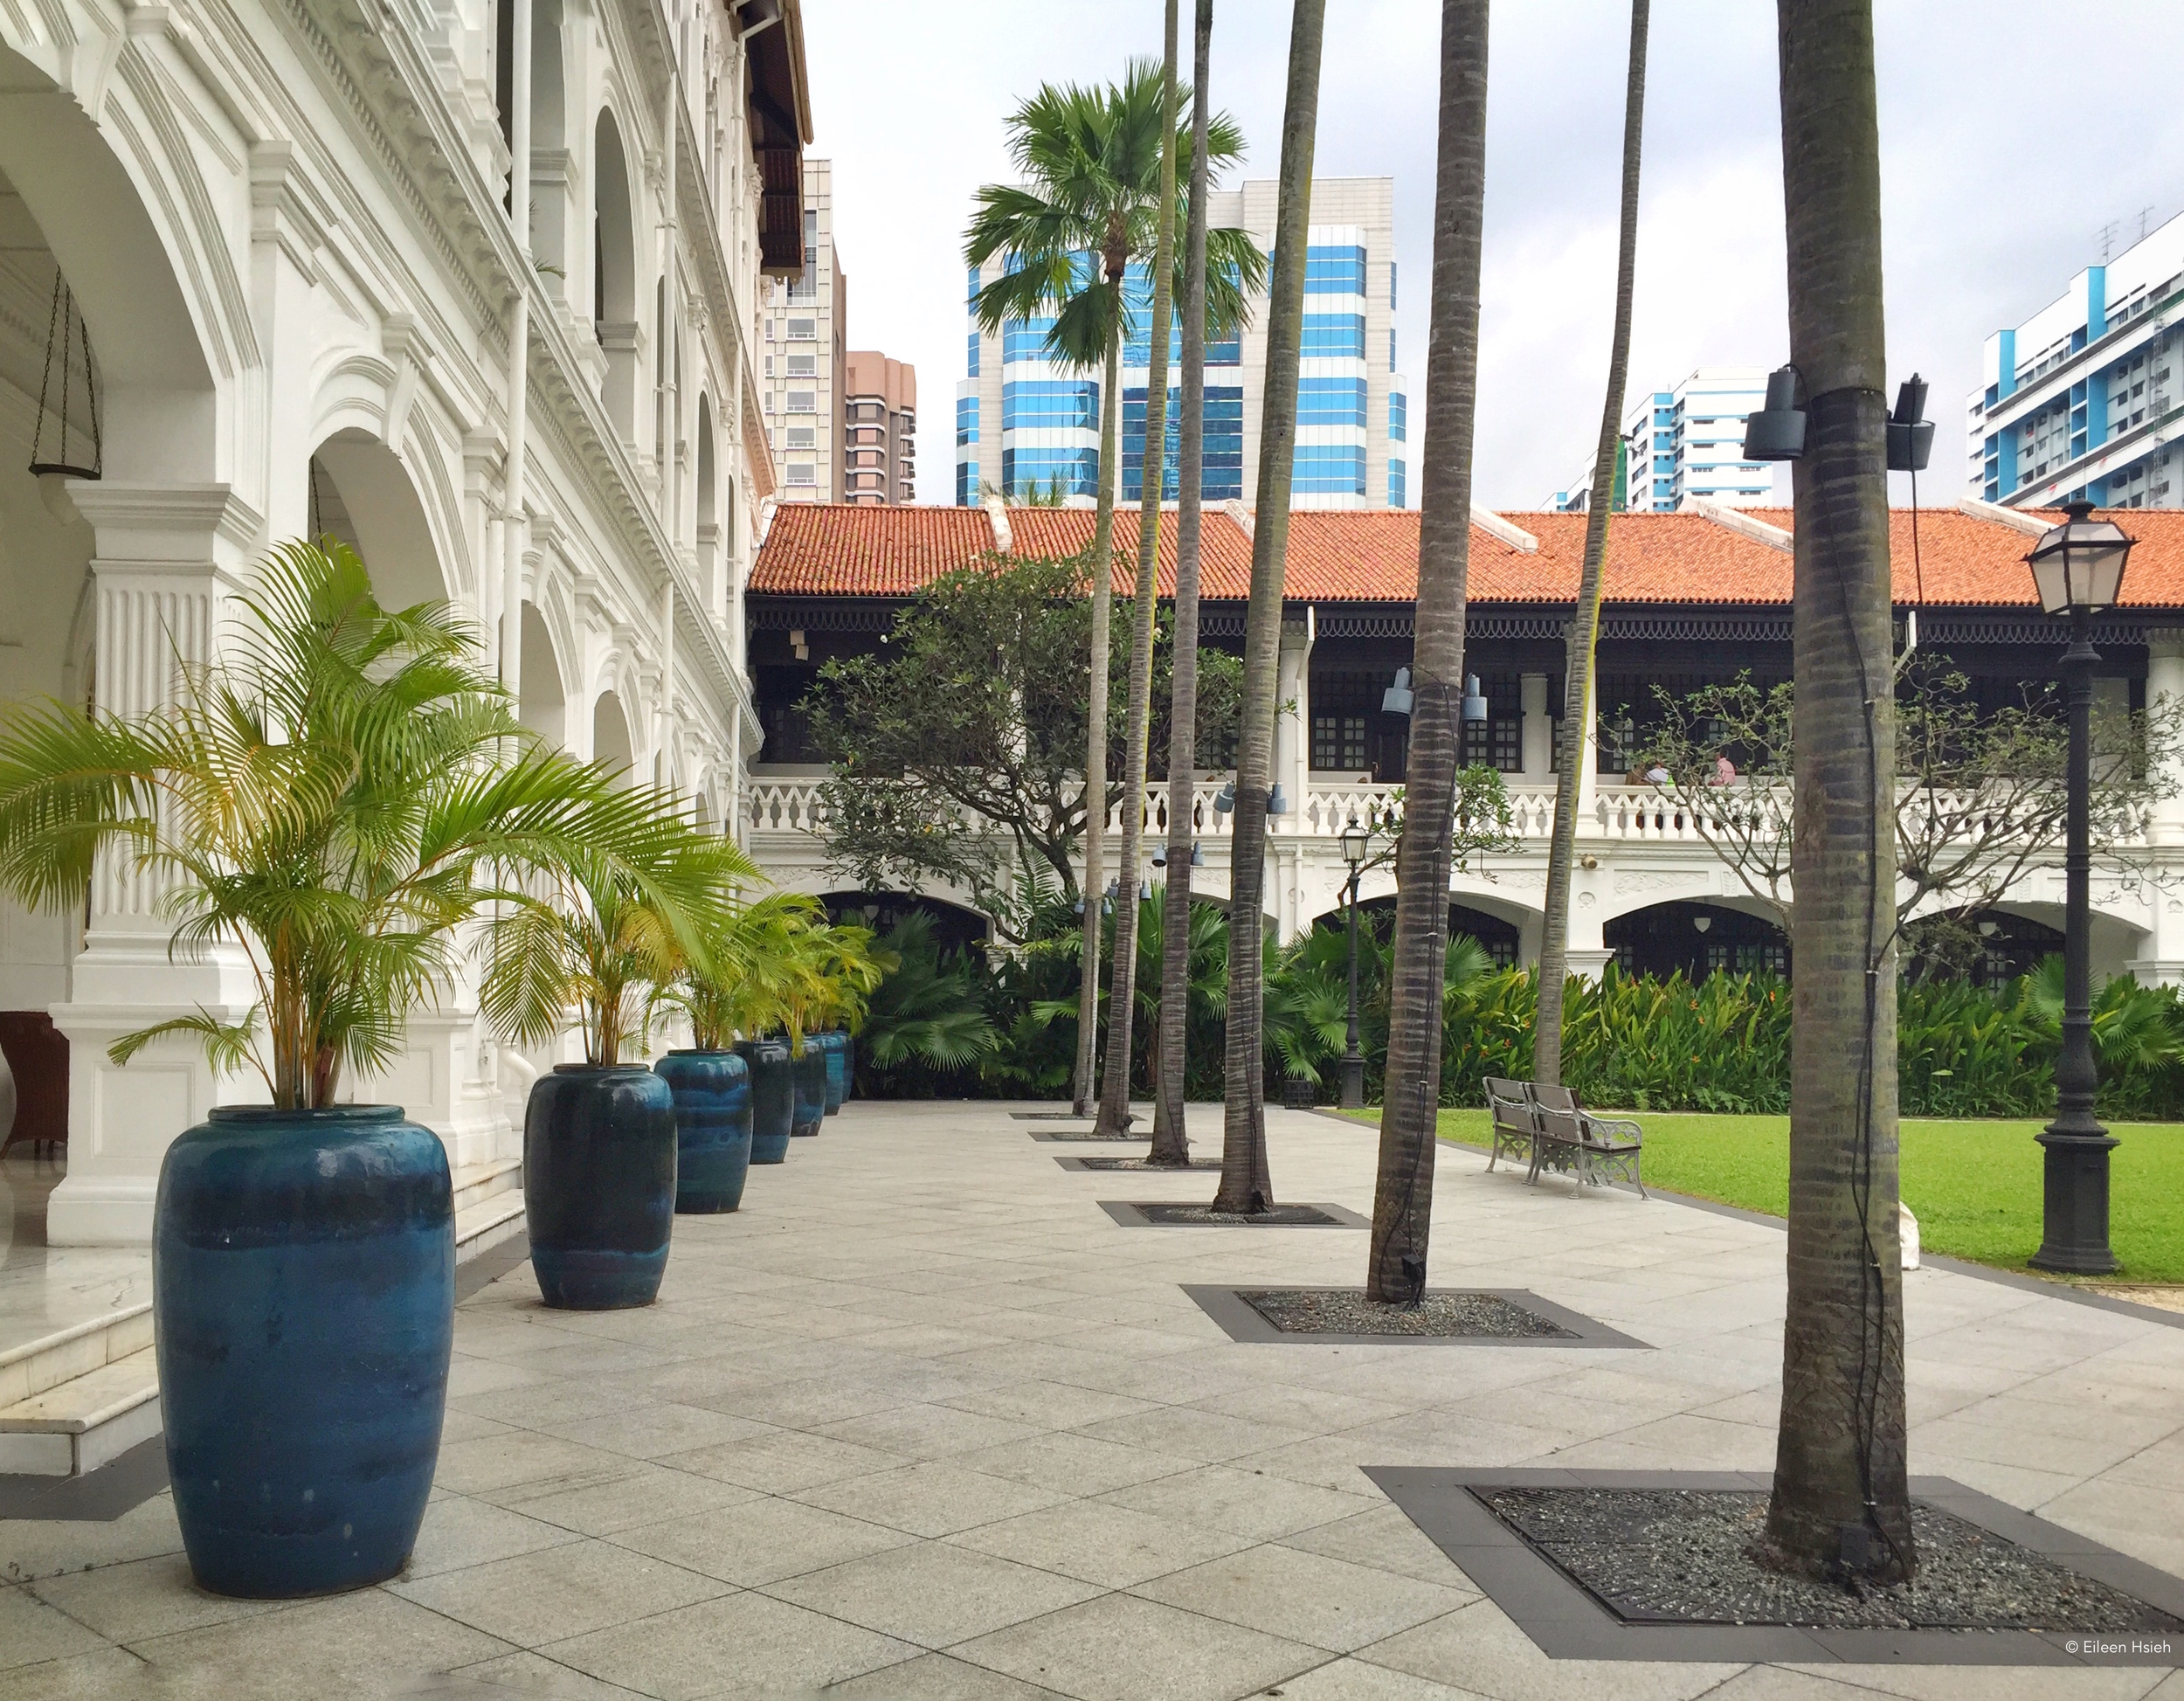 Courtyard next to the main building. © Eileen Hsieh